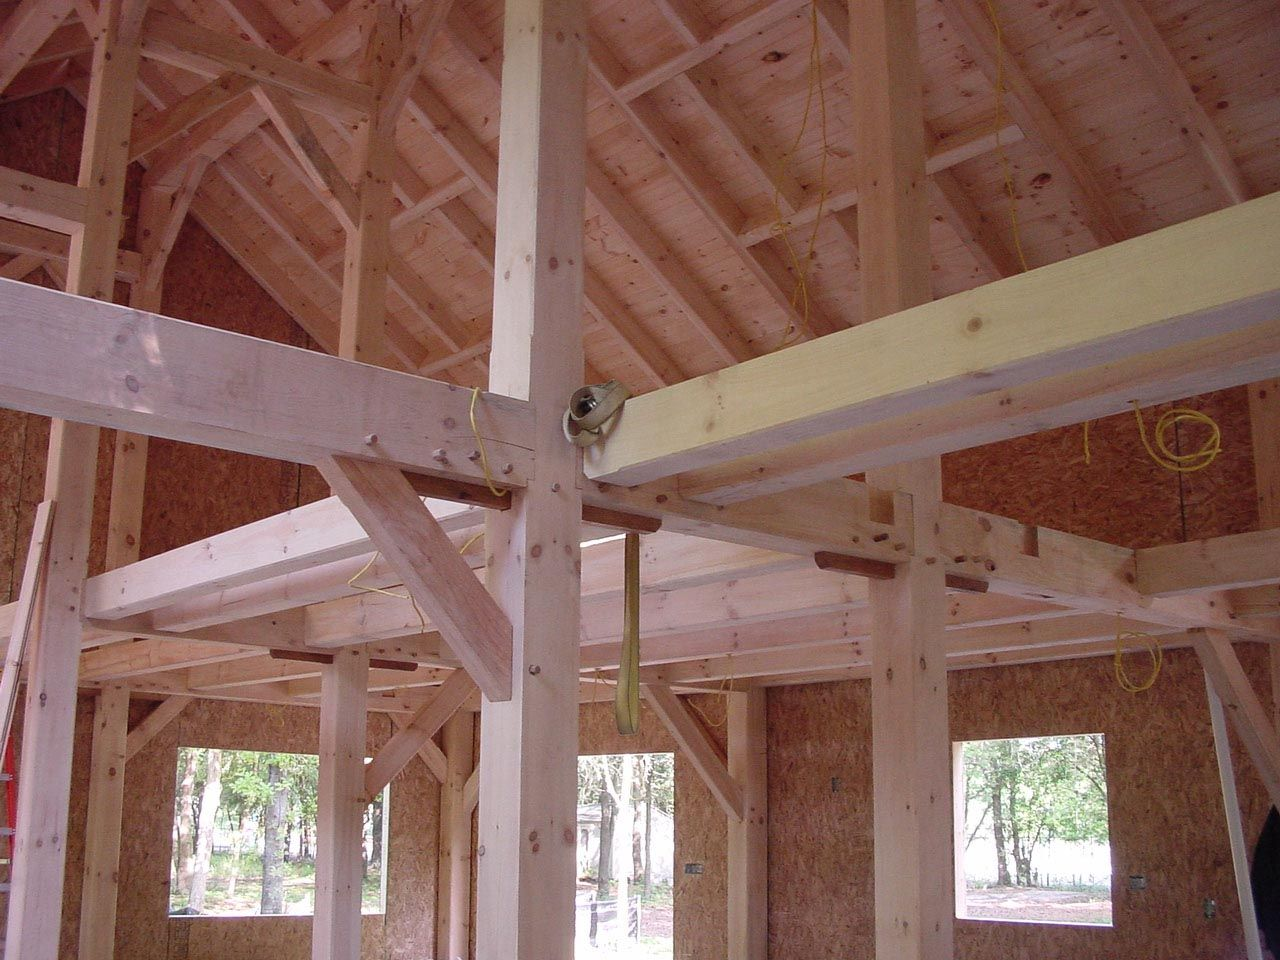 hight resolution of planning wiring in timber frame homes is important and not difficult if you follow a few simple rules